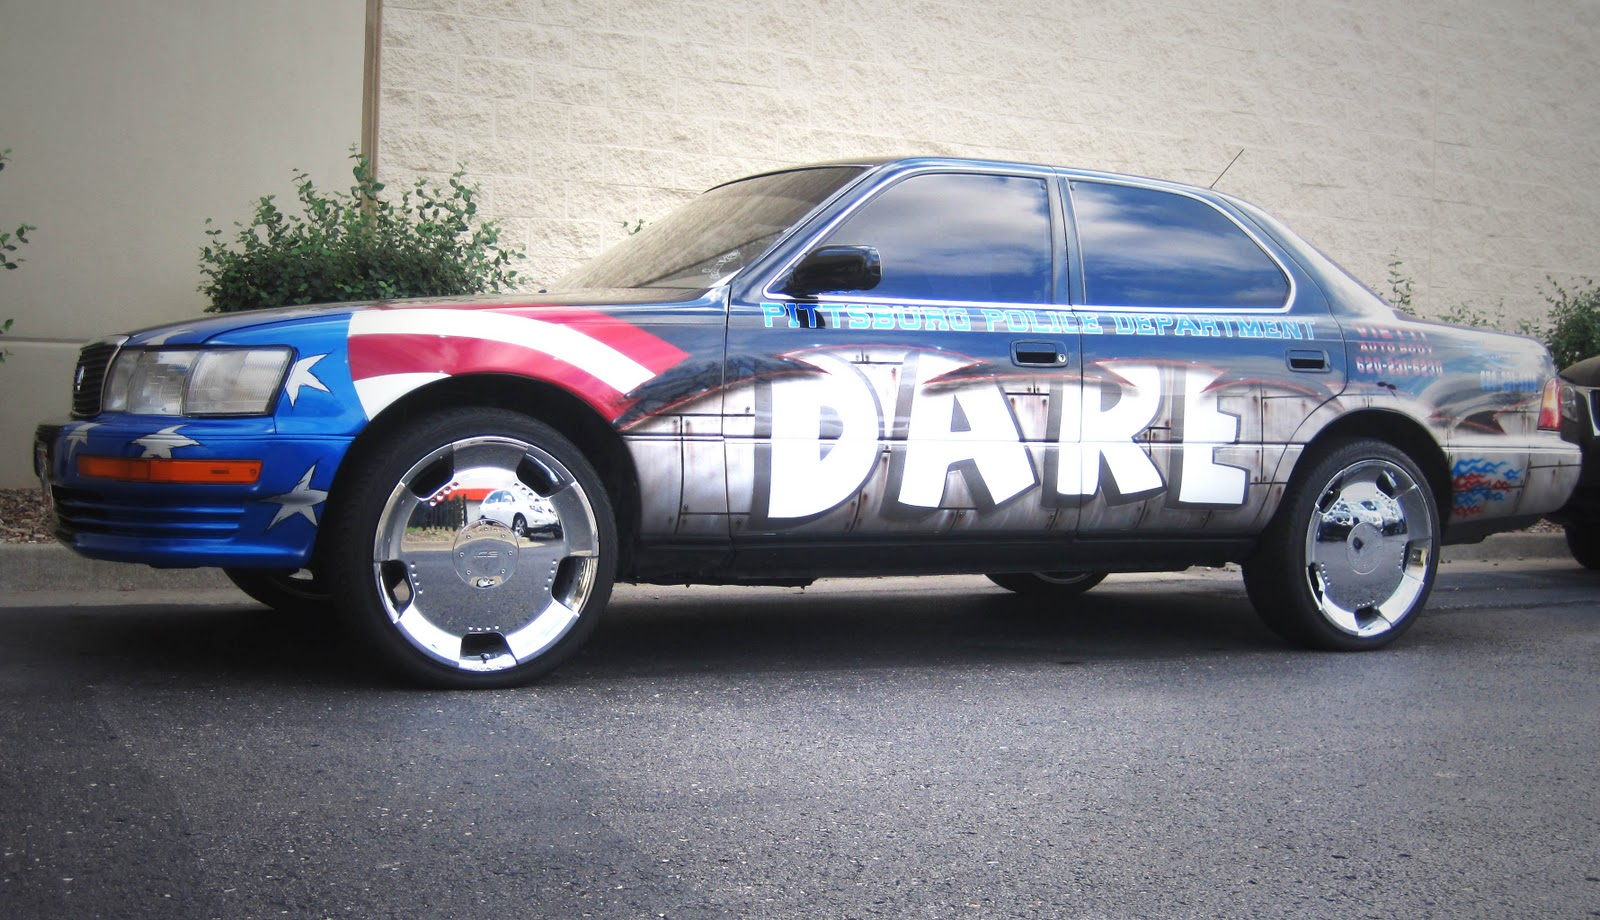 Check Out The Pittsburg Kansas Police Dept DARE Vehicle That Made Itu0027s Way  To Our Service Center This Month! It Was Confiscated By The Police Dept  From An ...